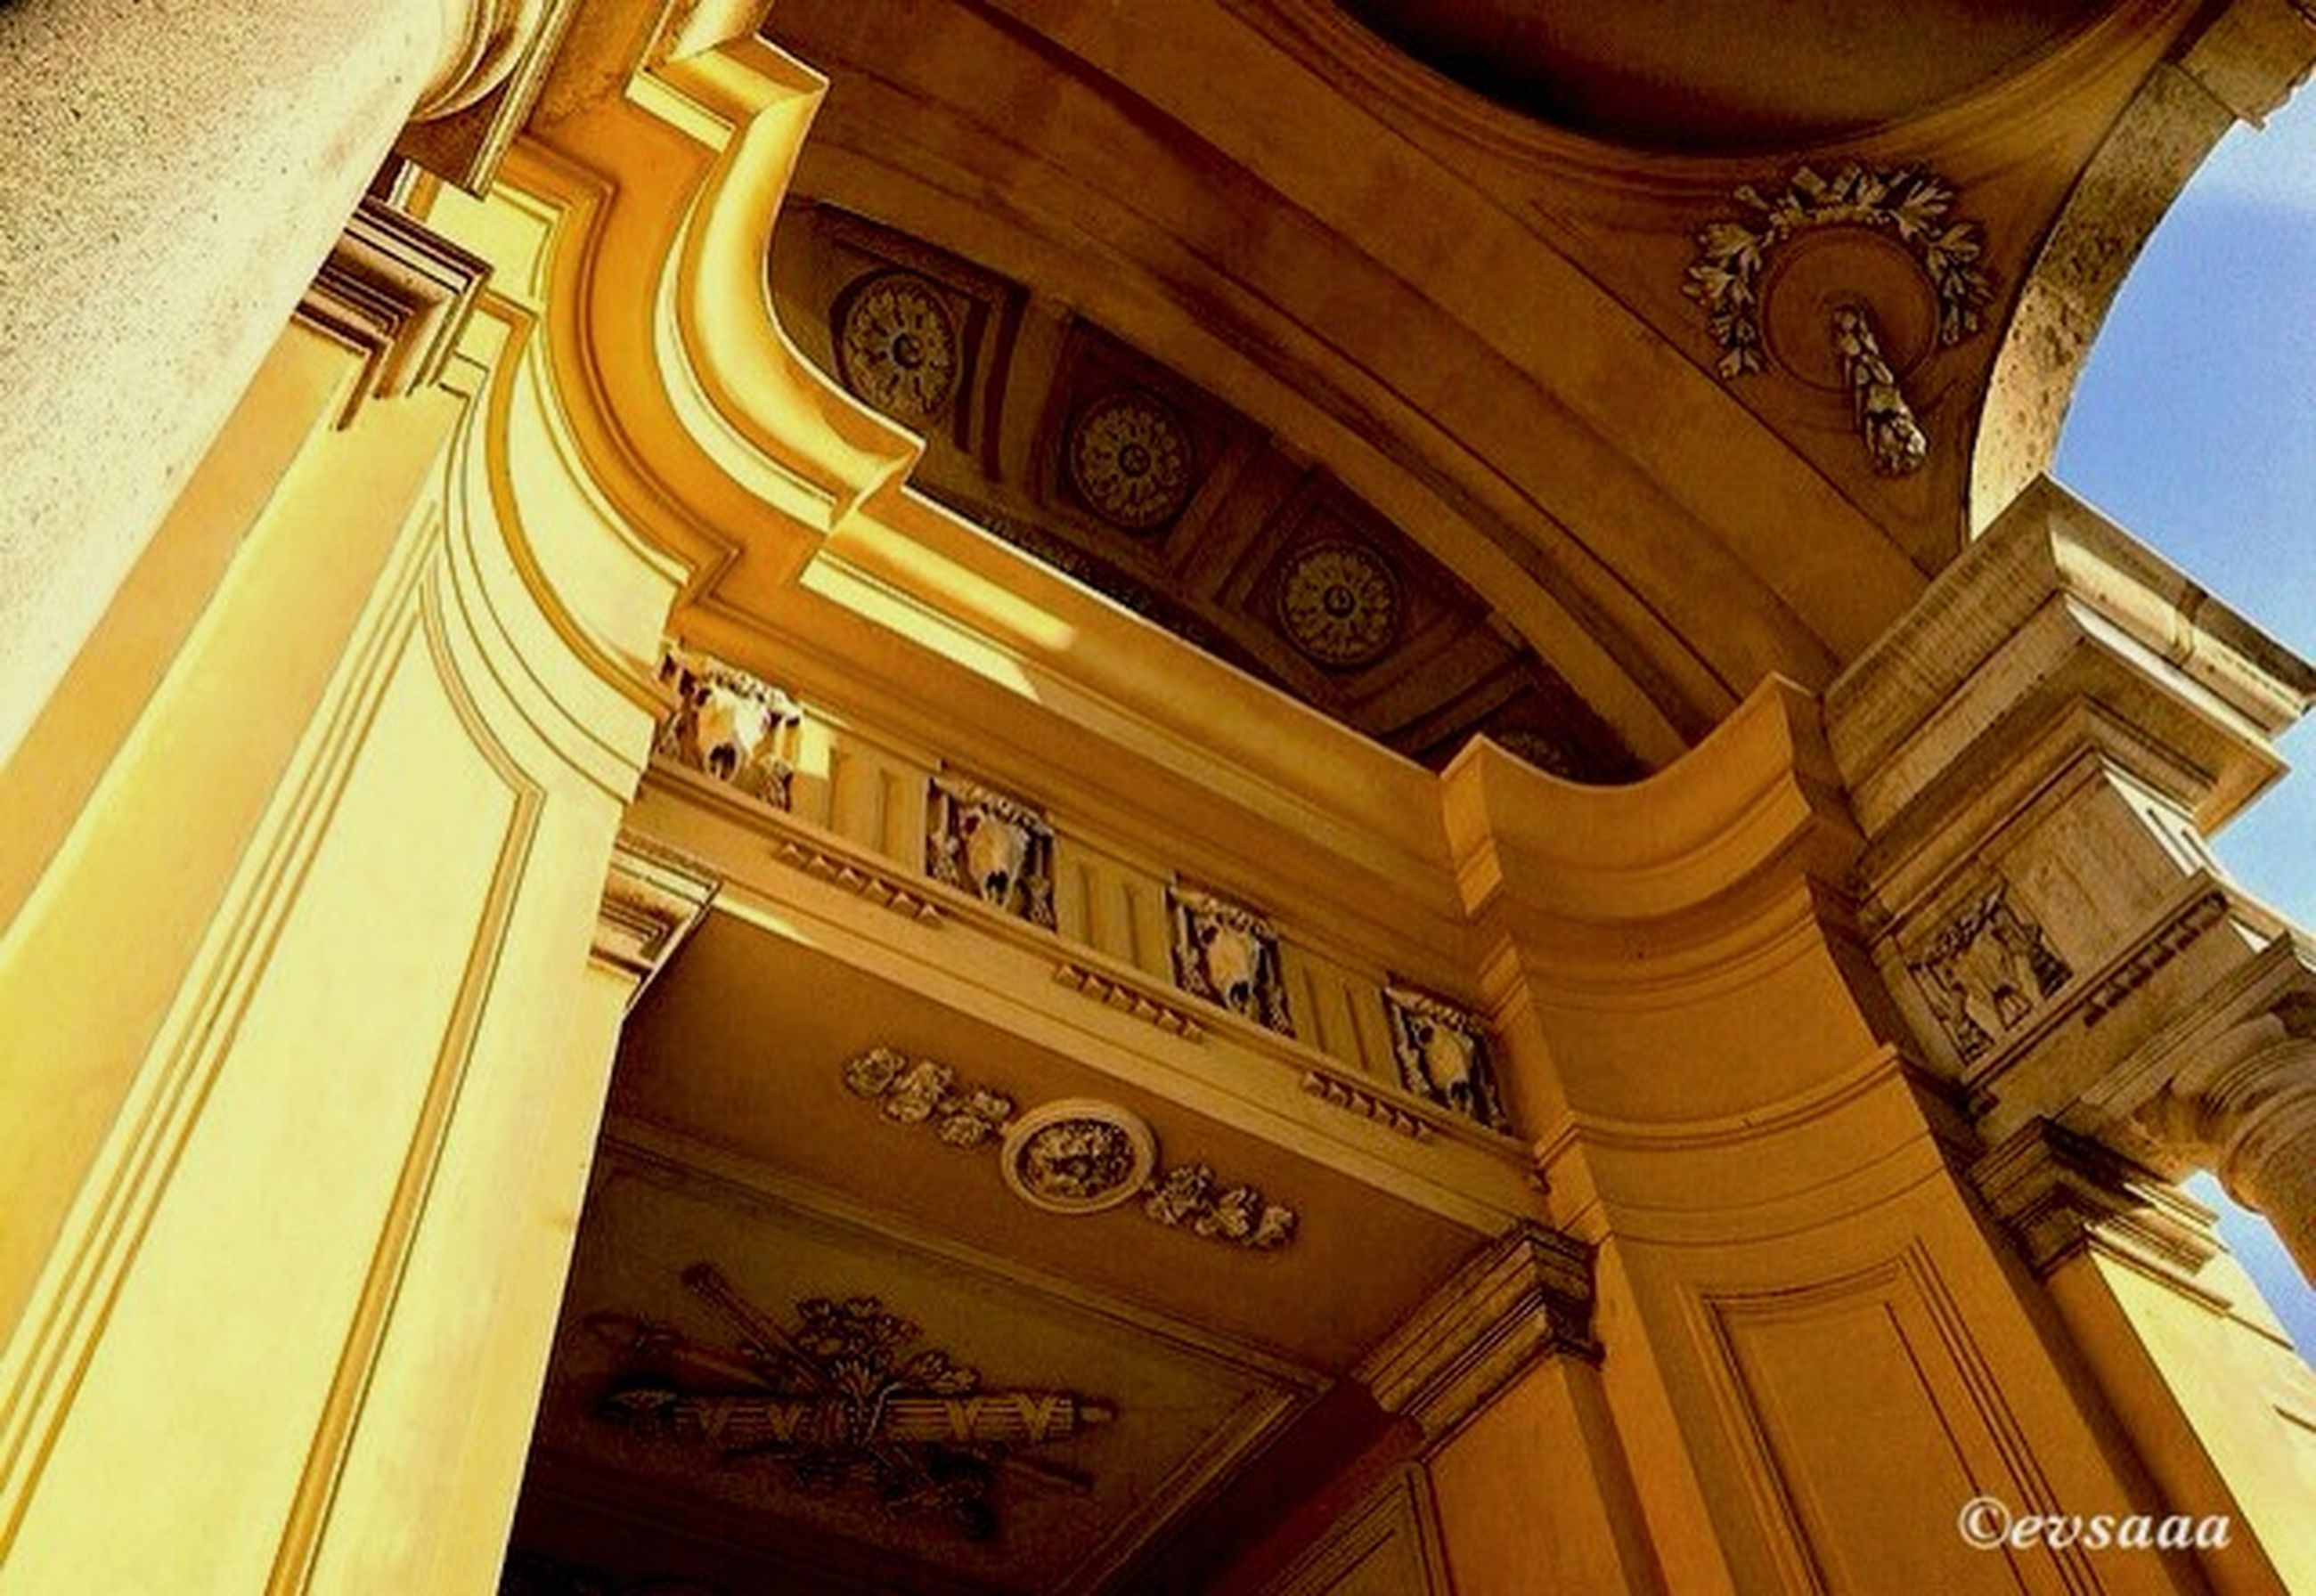 architecture, low angle view, built structure, building exterior, indoors, ornate, history, design, architectural feature, arch, famous place, pattern, religion, place of worship, no people, travel destinations, building, text, ceiling, architectural column